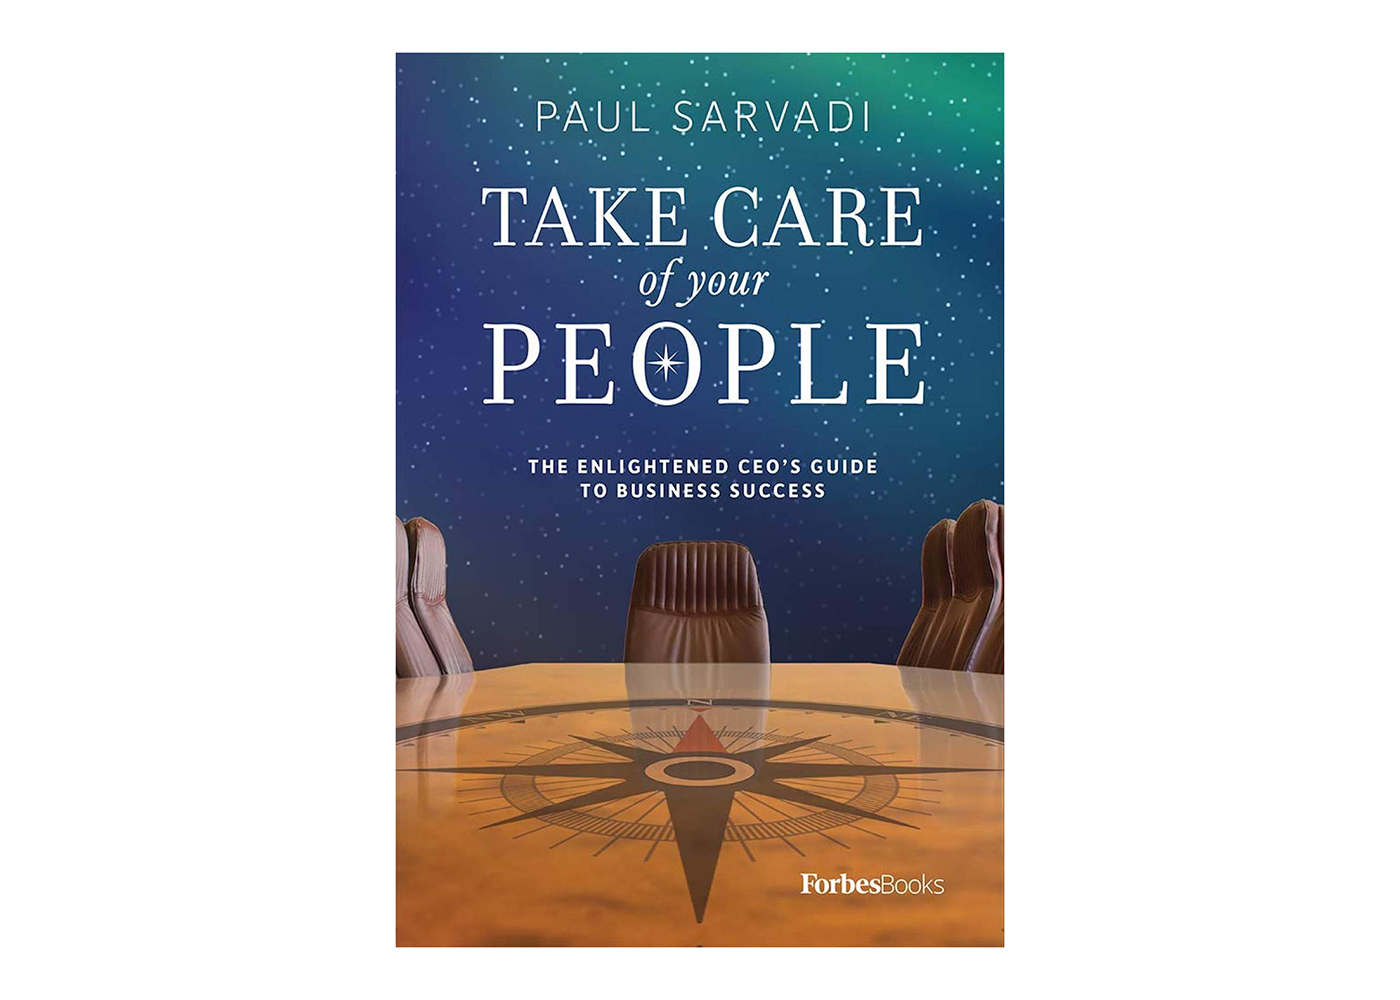 Take Care of your People book